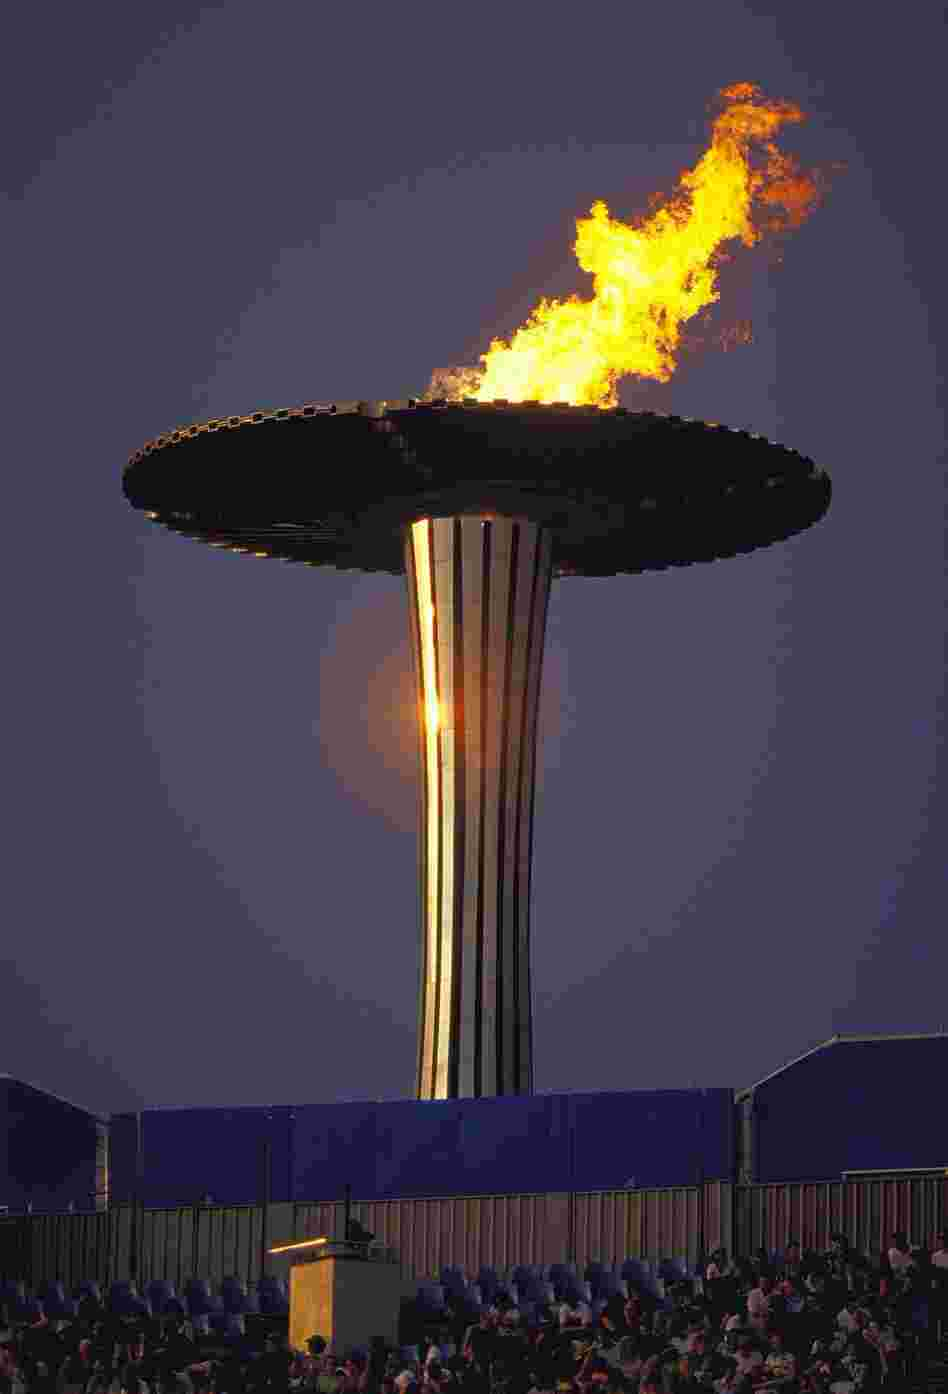 Sydney's Olympic Flame towered over the stadium during the 2000 games.